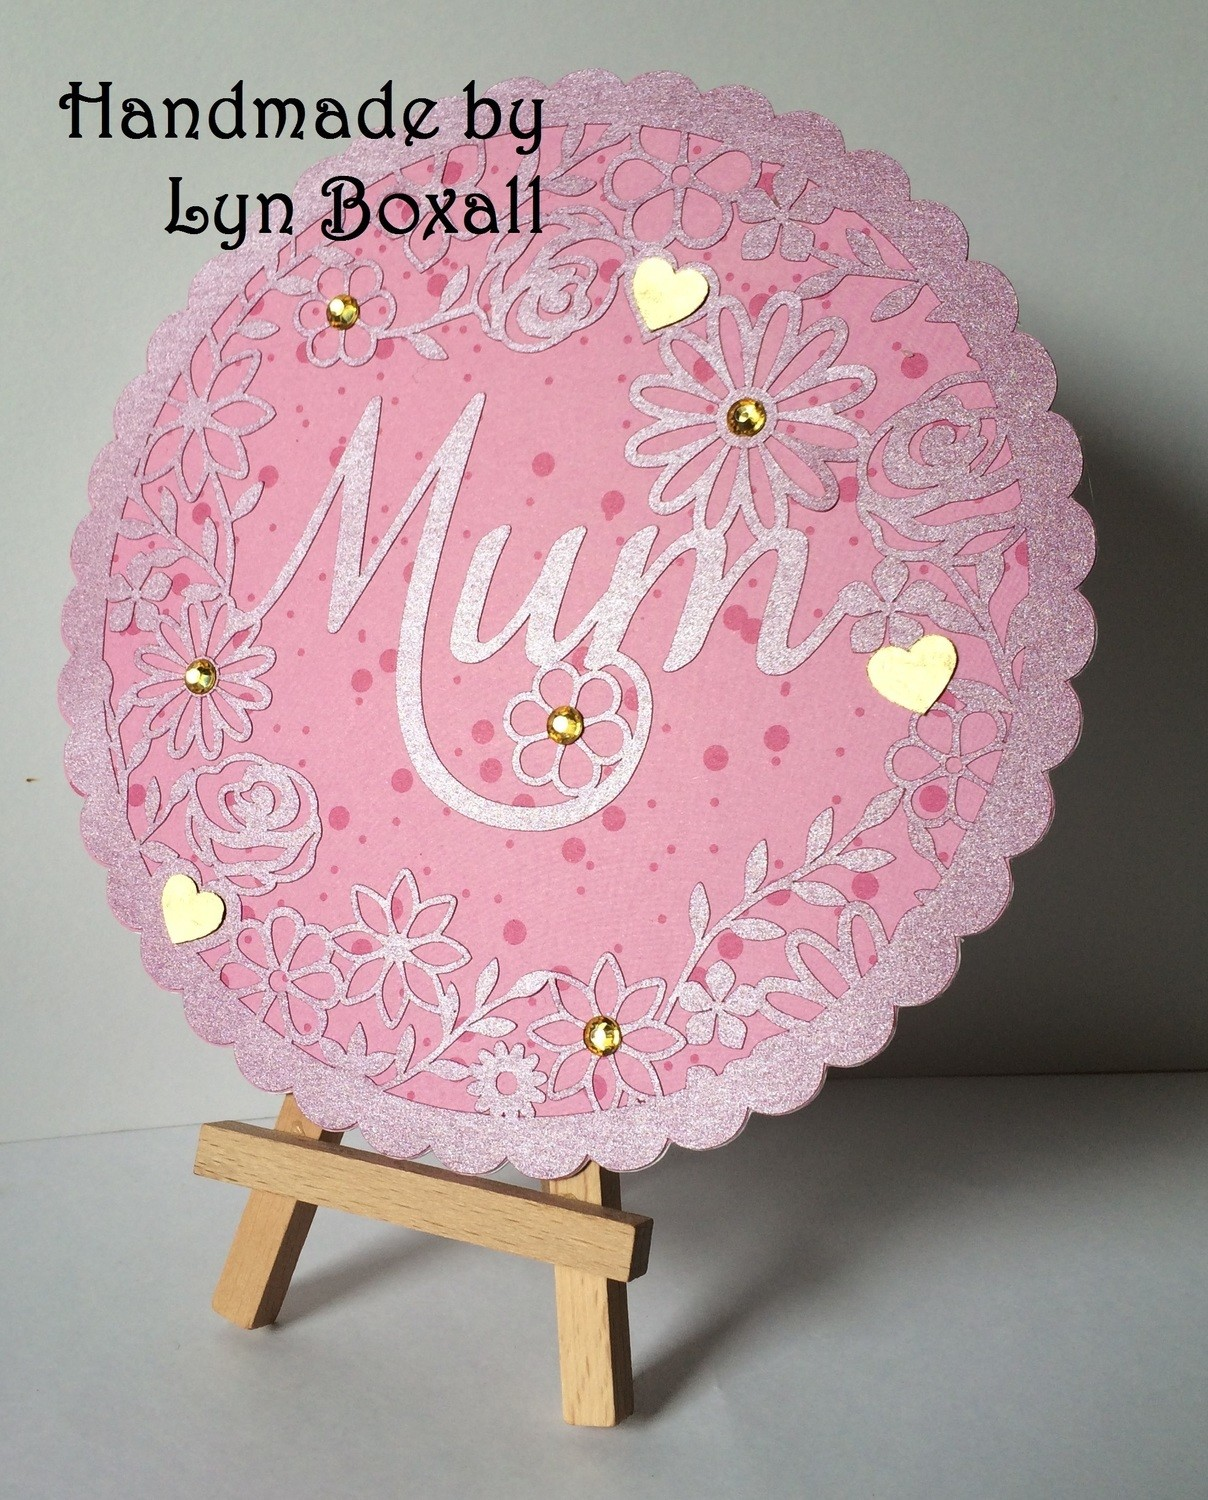 Mum decorative round frame ideal for Mother's Day.